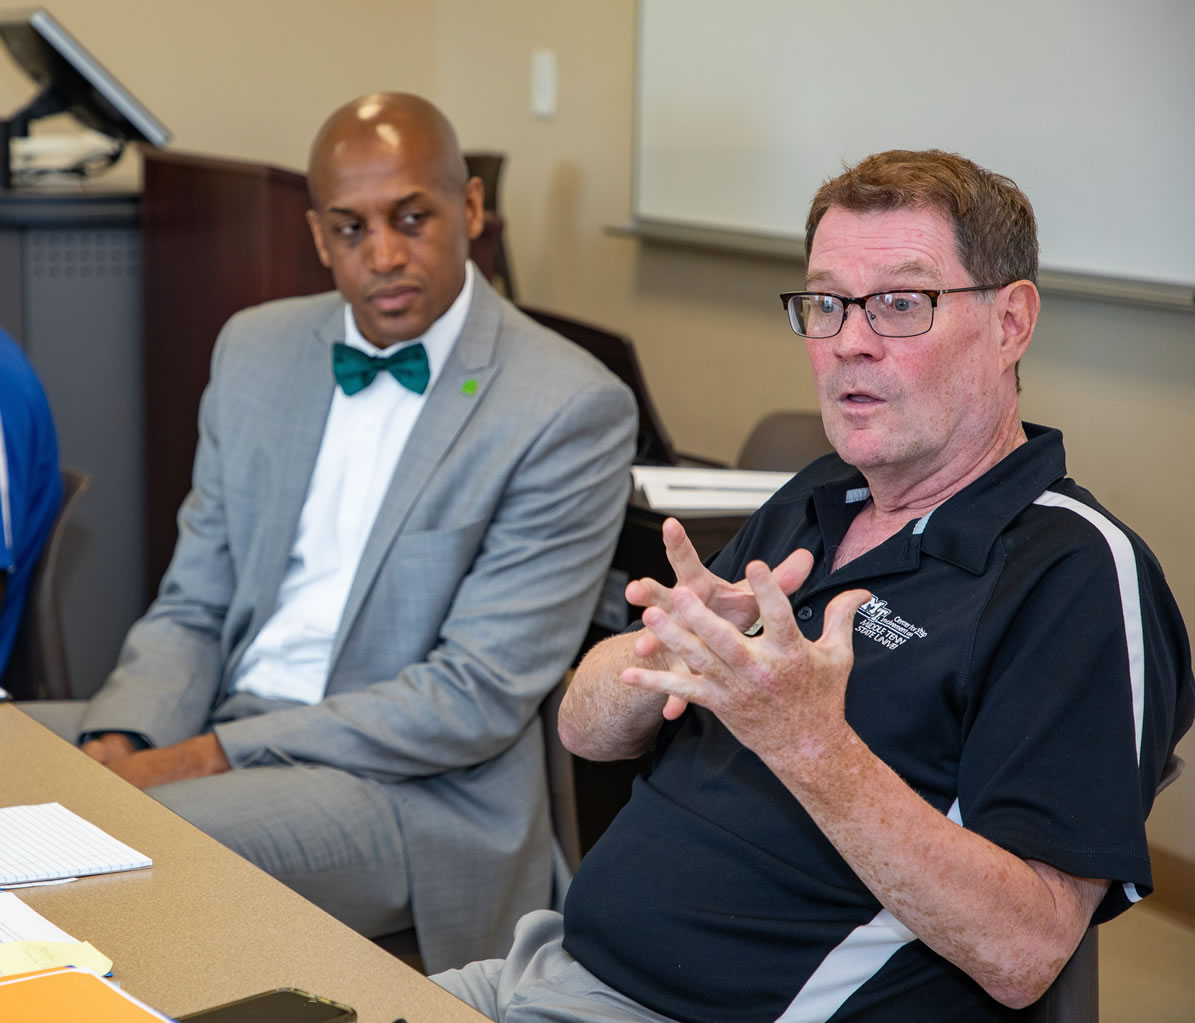 Leaders from Motlow State and Middle Tennessee State University recently joined in a workshop designed to support Motlow graduates who are transferring to MTSU. Leadership at both institutions recognize the value of collaborative work designed to improve equity, inclusion and diversity. Pictured, l-r: Dr. Mika'il Petin, assistant vice president of student success at Motlow, and Dr. Danny Kelley, assistant vice president for student affairs at MTSU. Motlow Staff Photo.